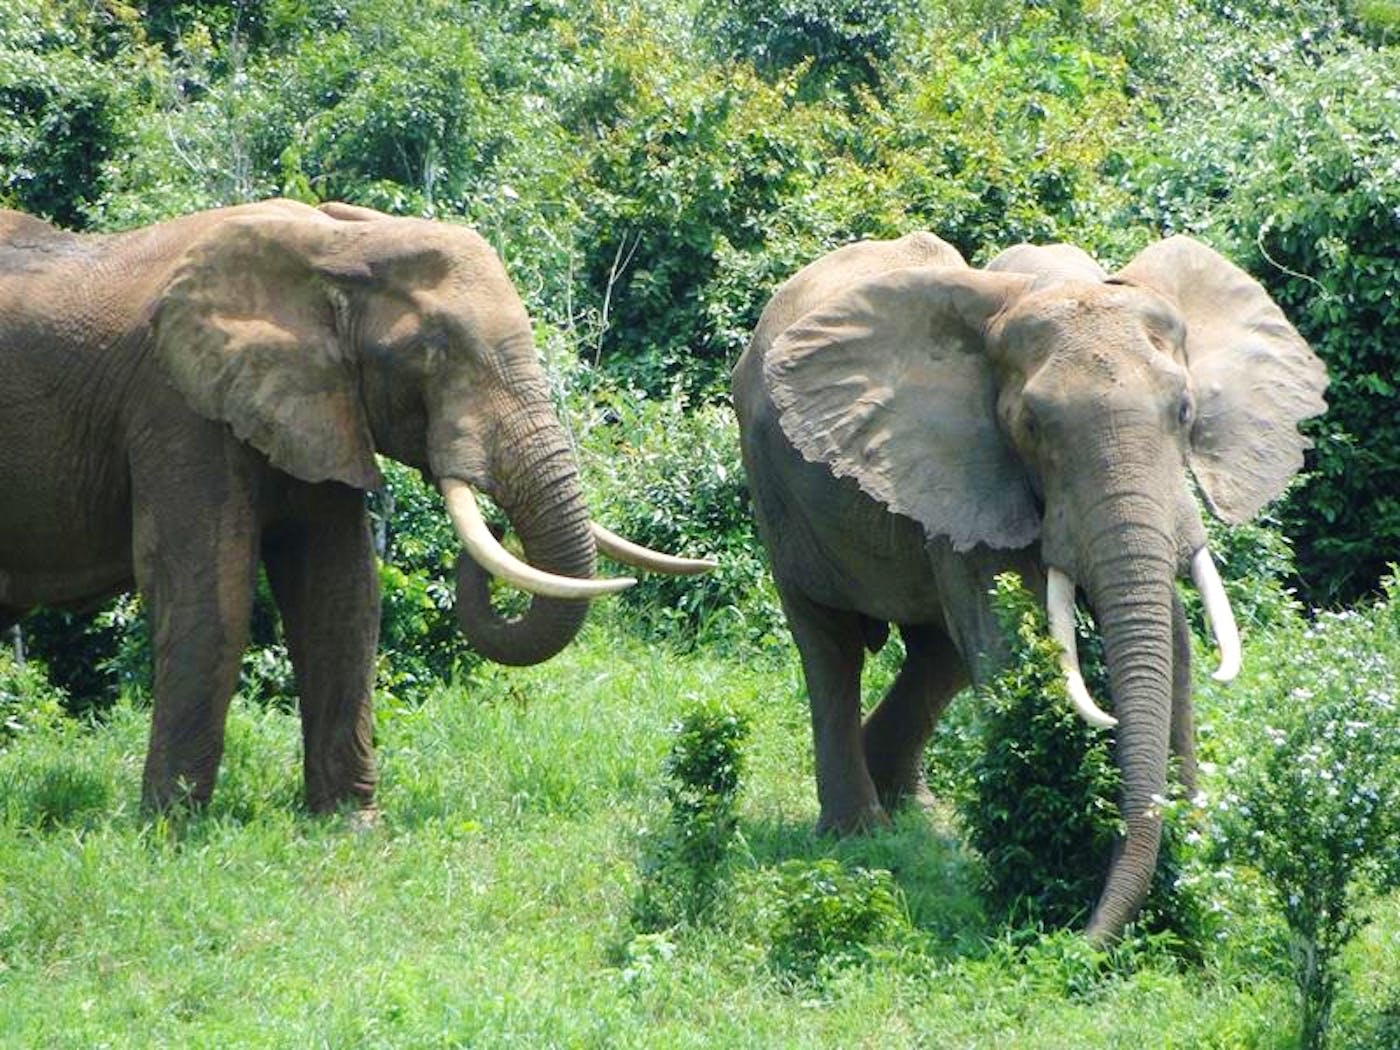 Elephant Community Conservation Assistant